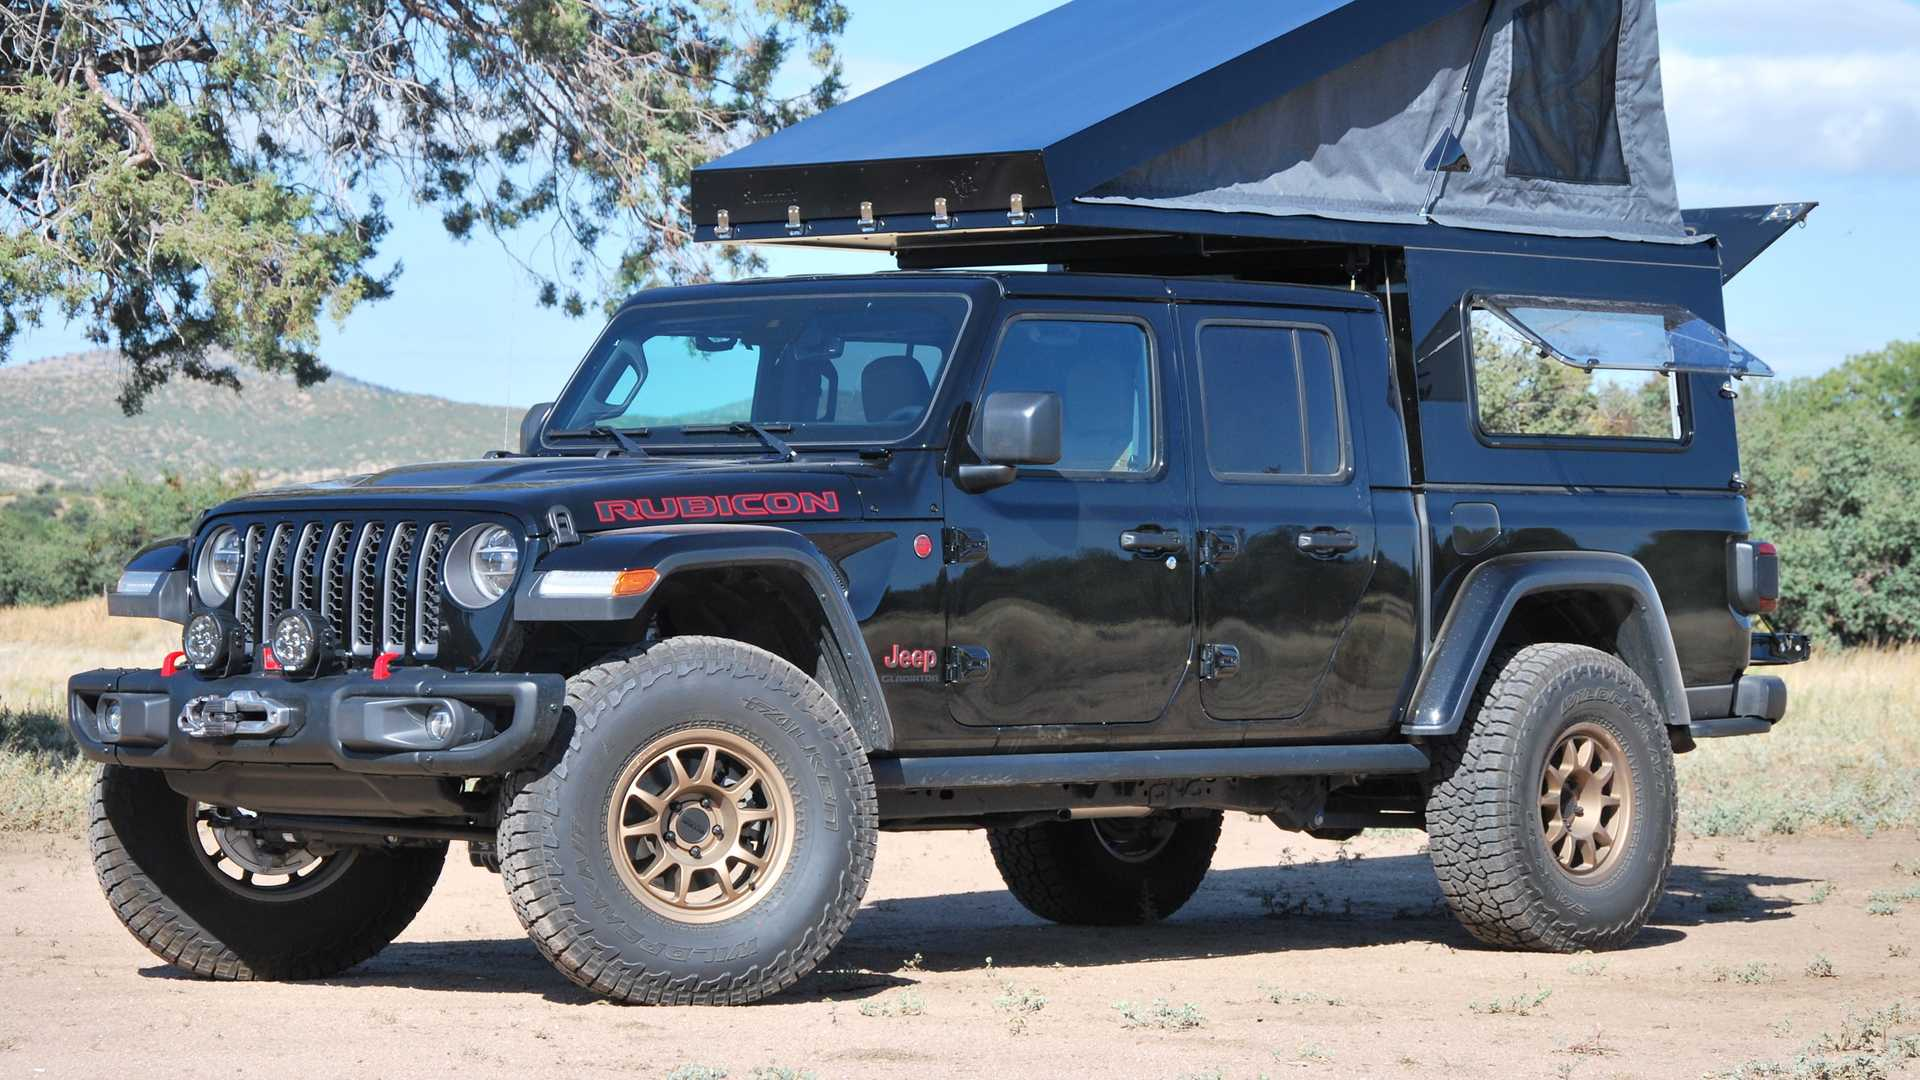 Jeep Gladiator Goes Overlanding With New At Summit Habitat Camper